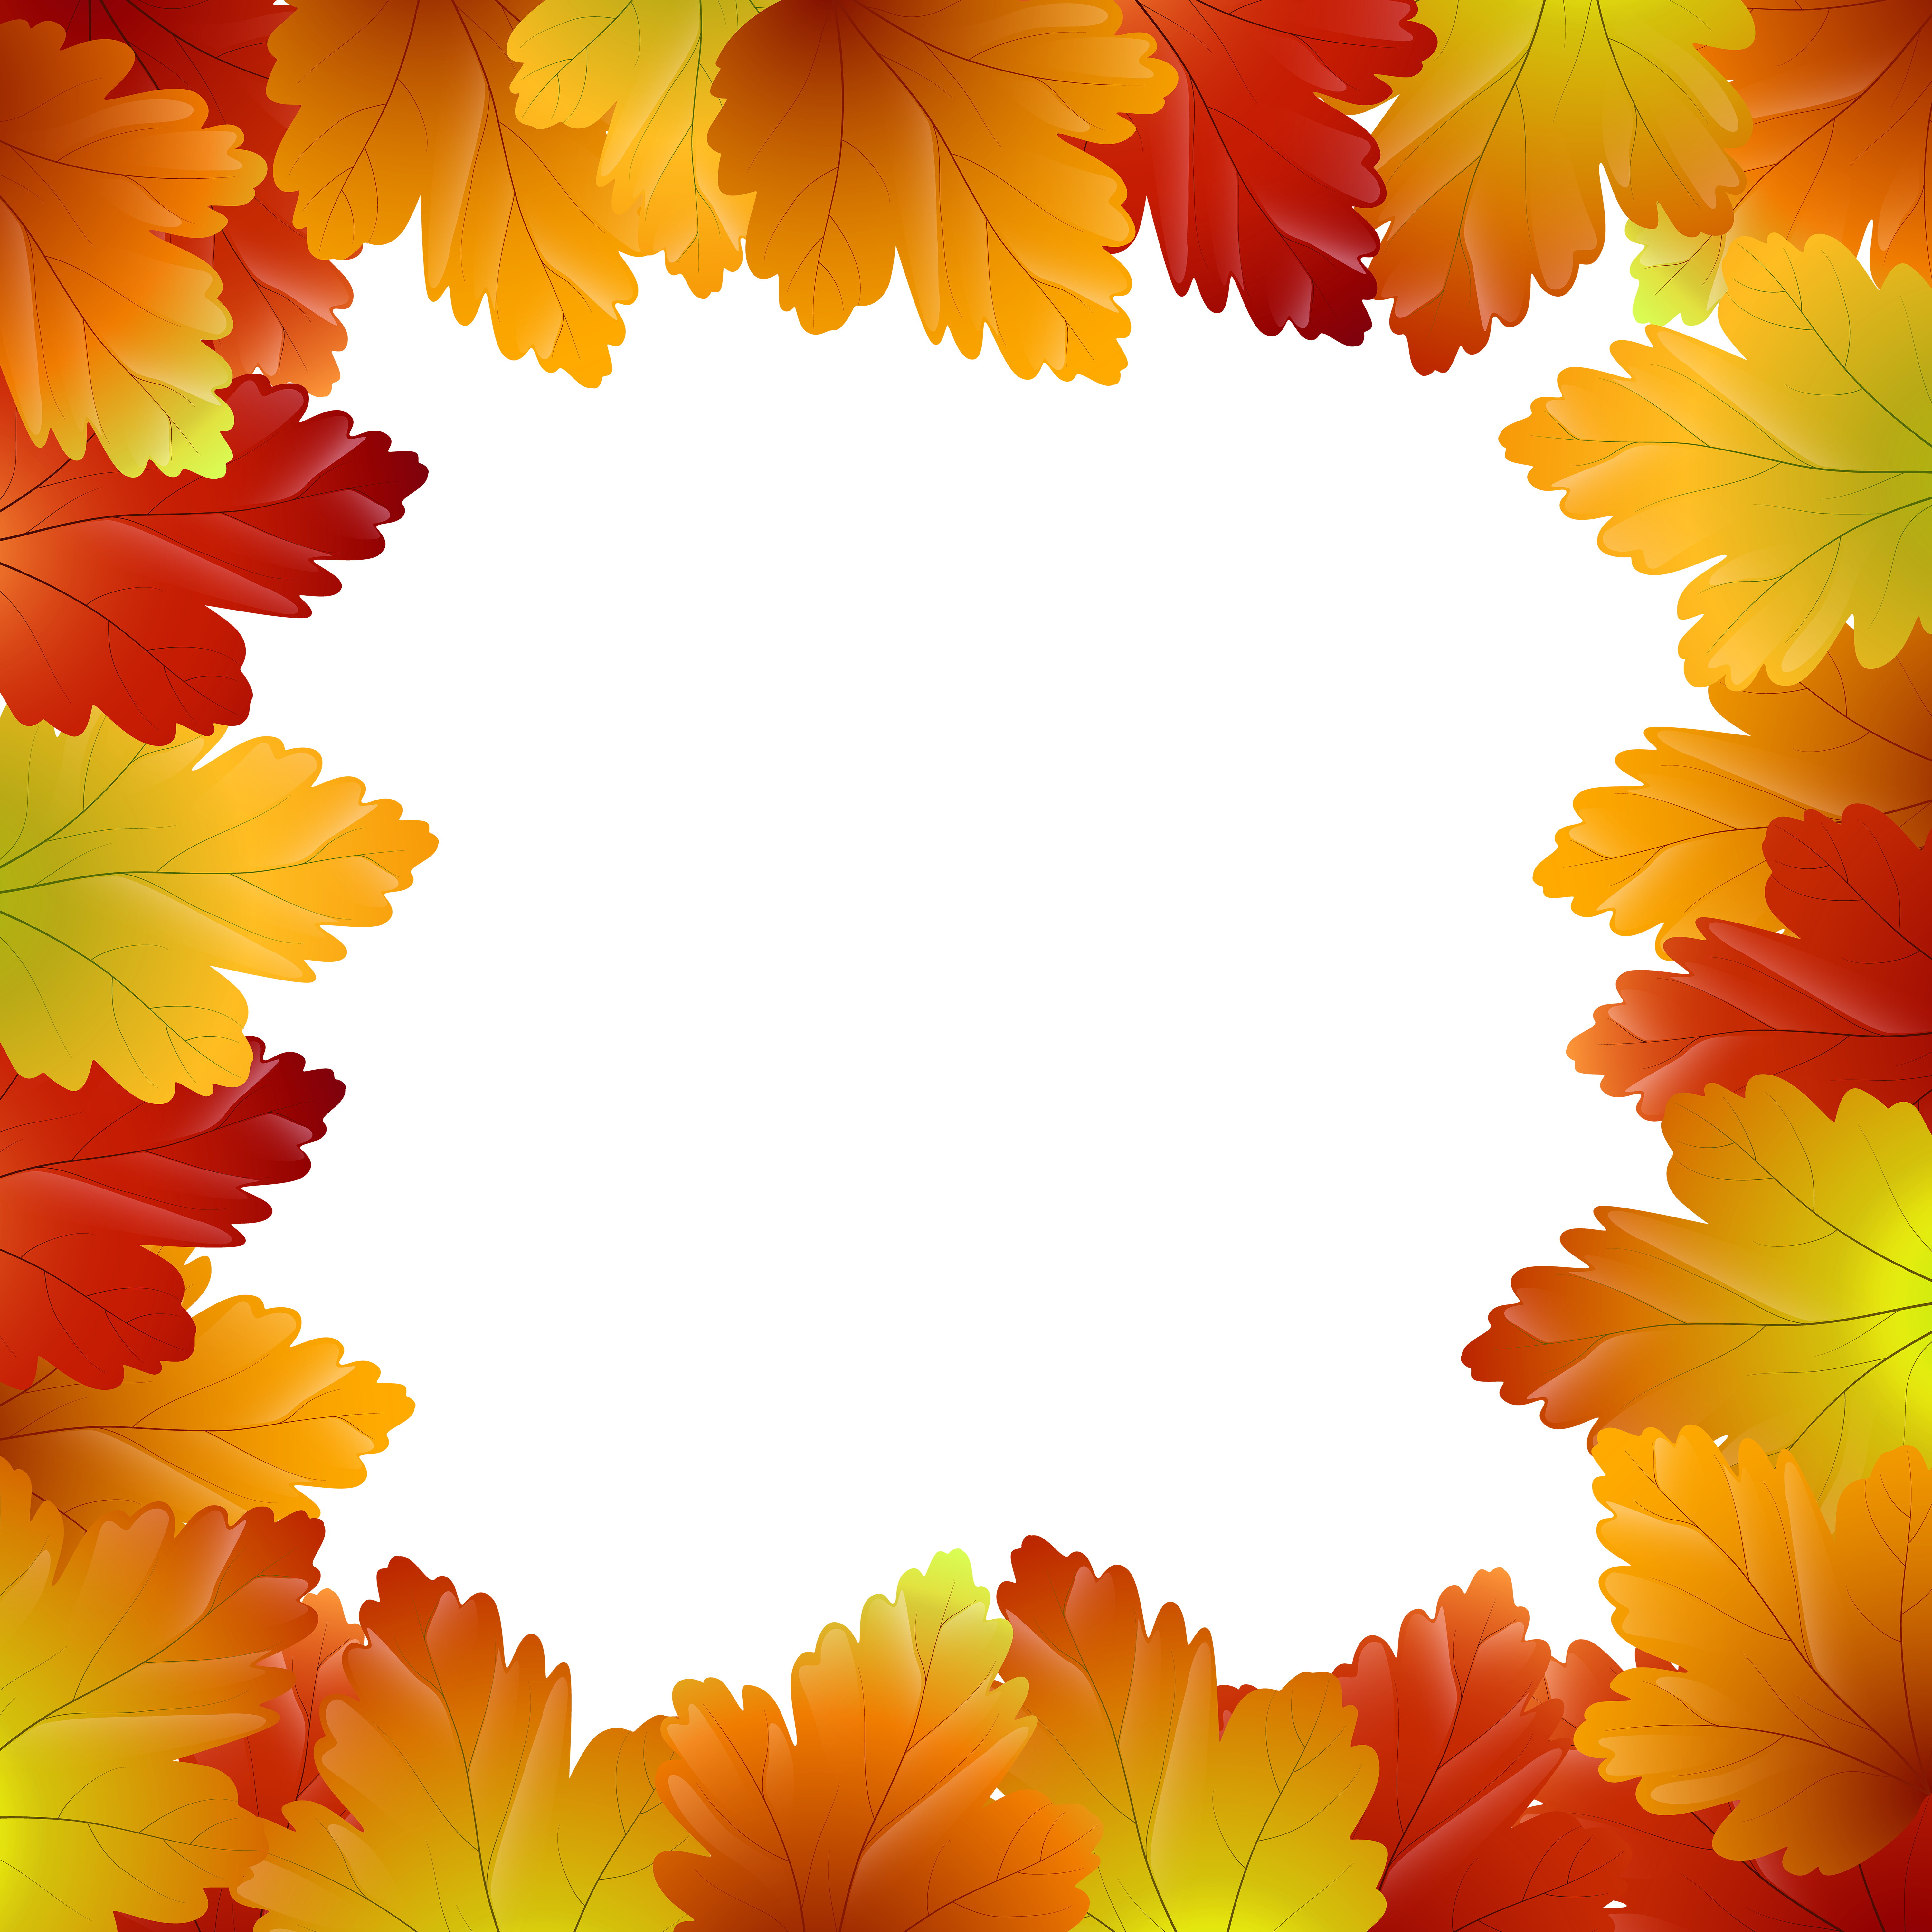 Free clipart borders autumn. Leaves border frame png